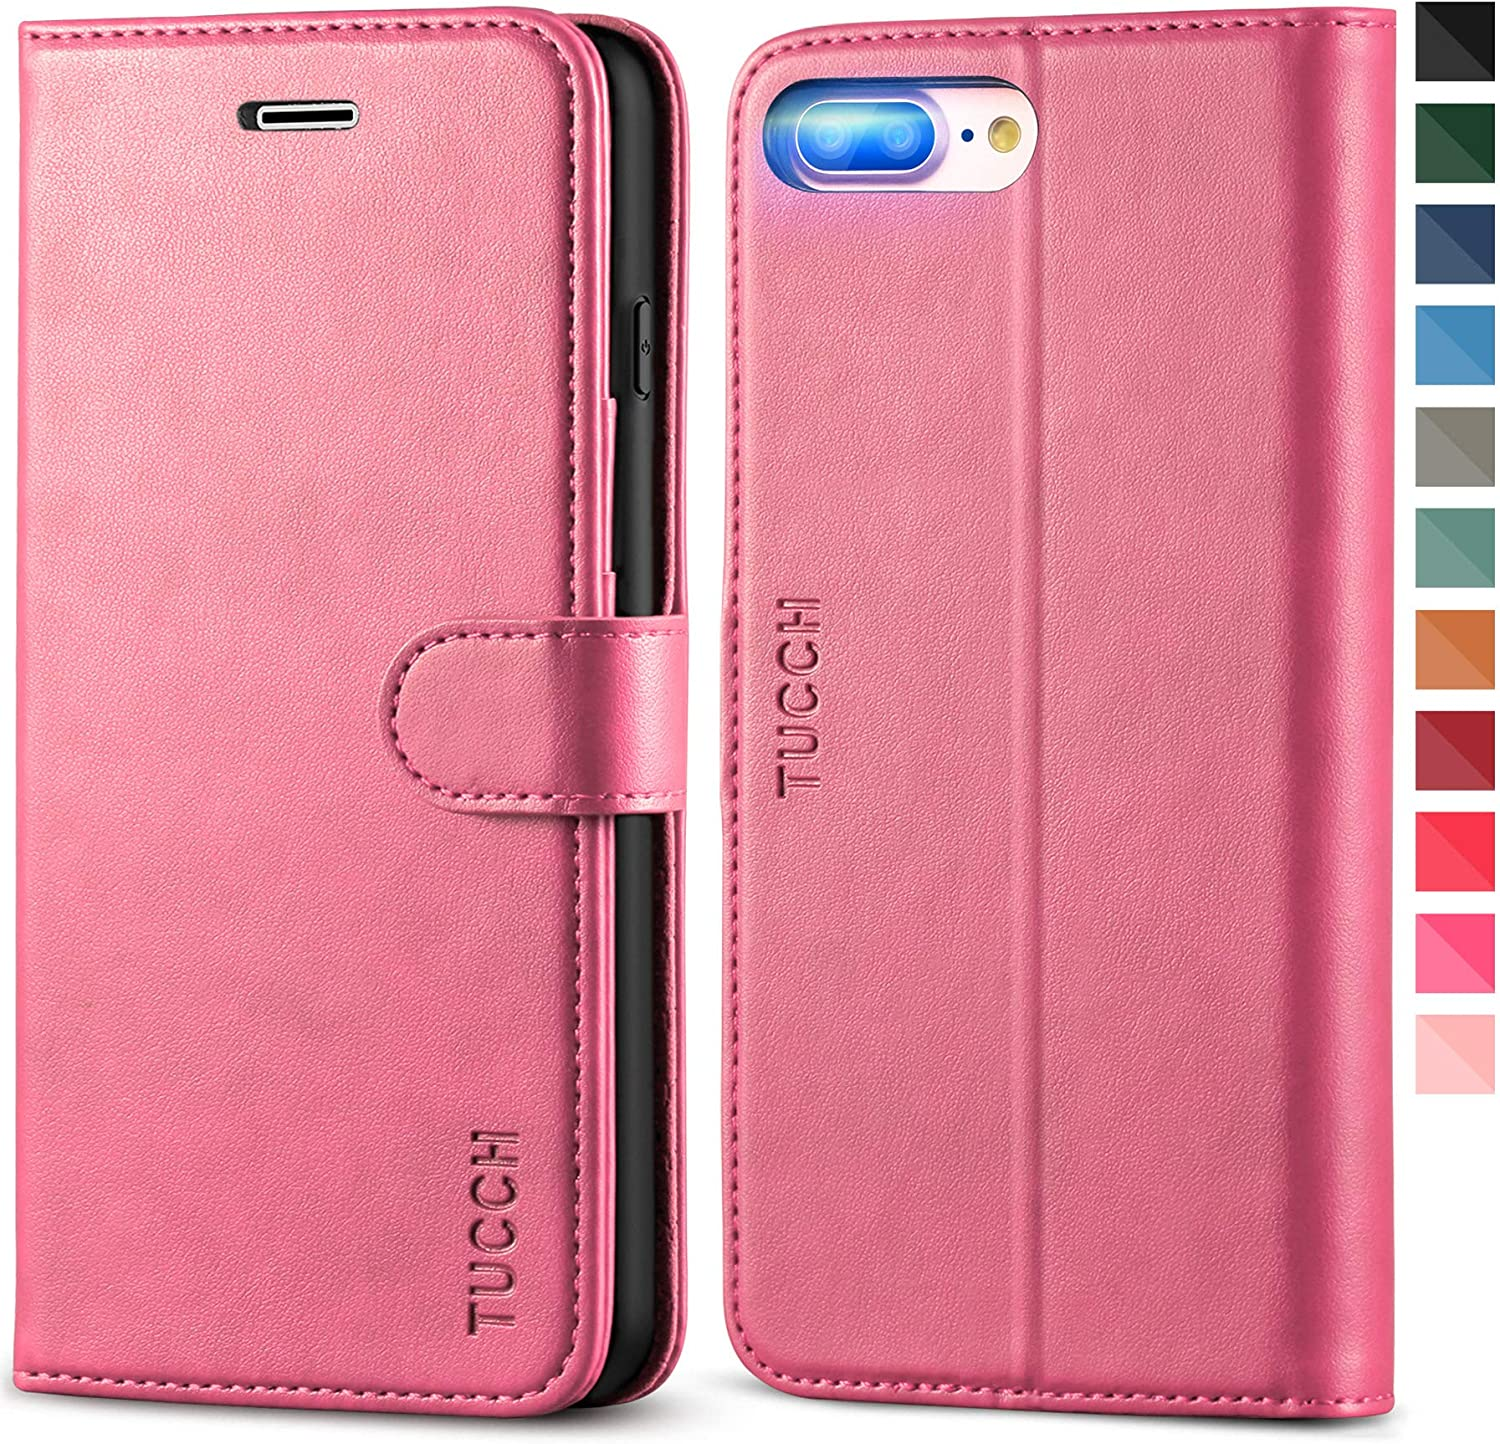 TUCCH iPhone 8 Plus Case, iPhone 7 Plus Wallet Case, Magnetic Closure Card Slot Money Pouch, Stand PU Leather Purse Flip Book Cover [TPU Interior Case] Compatible with iPhone 8 Plus/7 Plus, Hot Pink